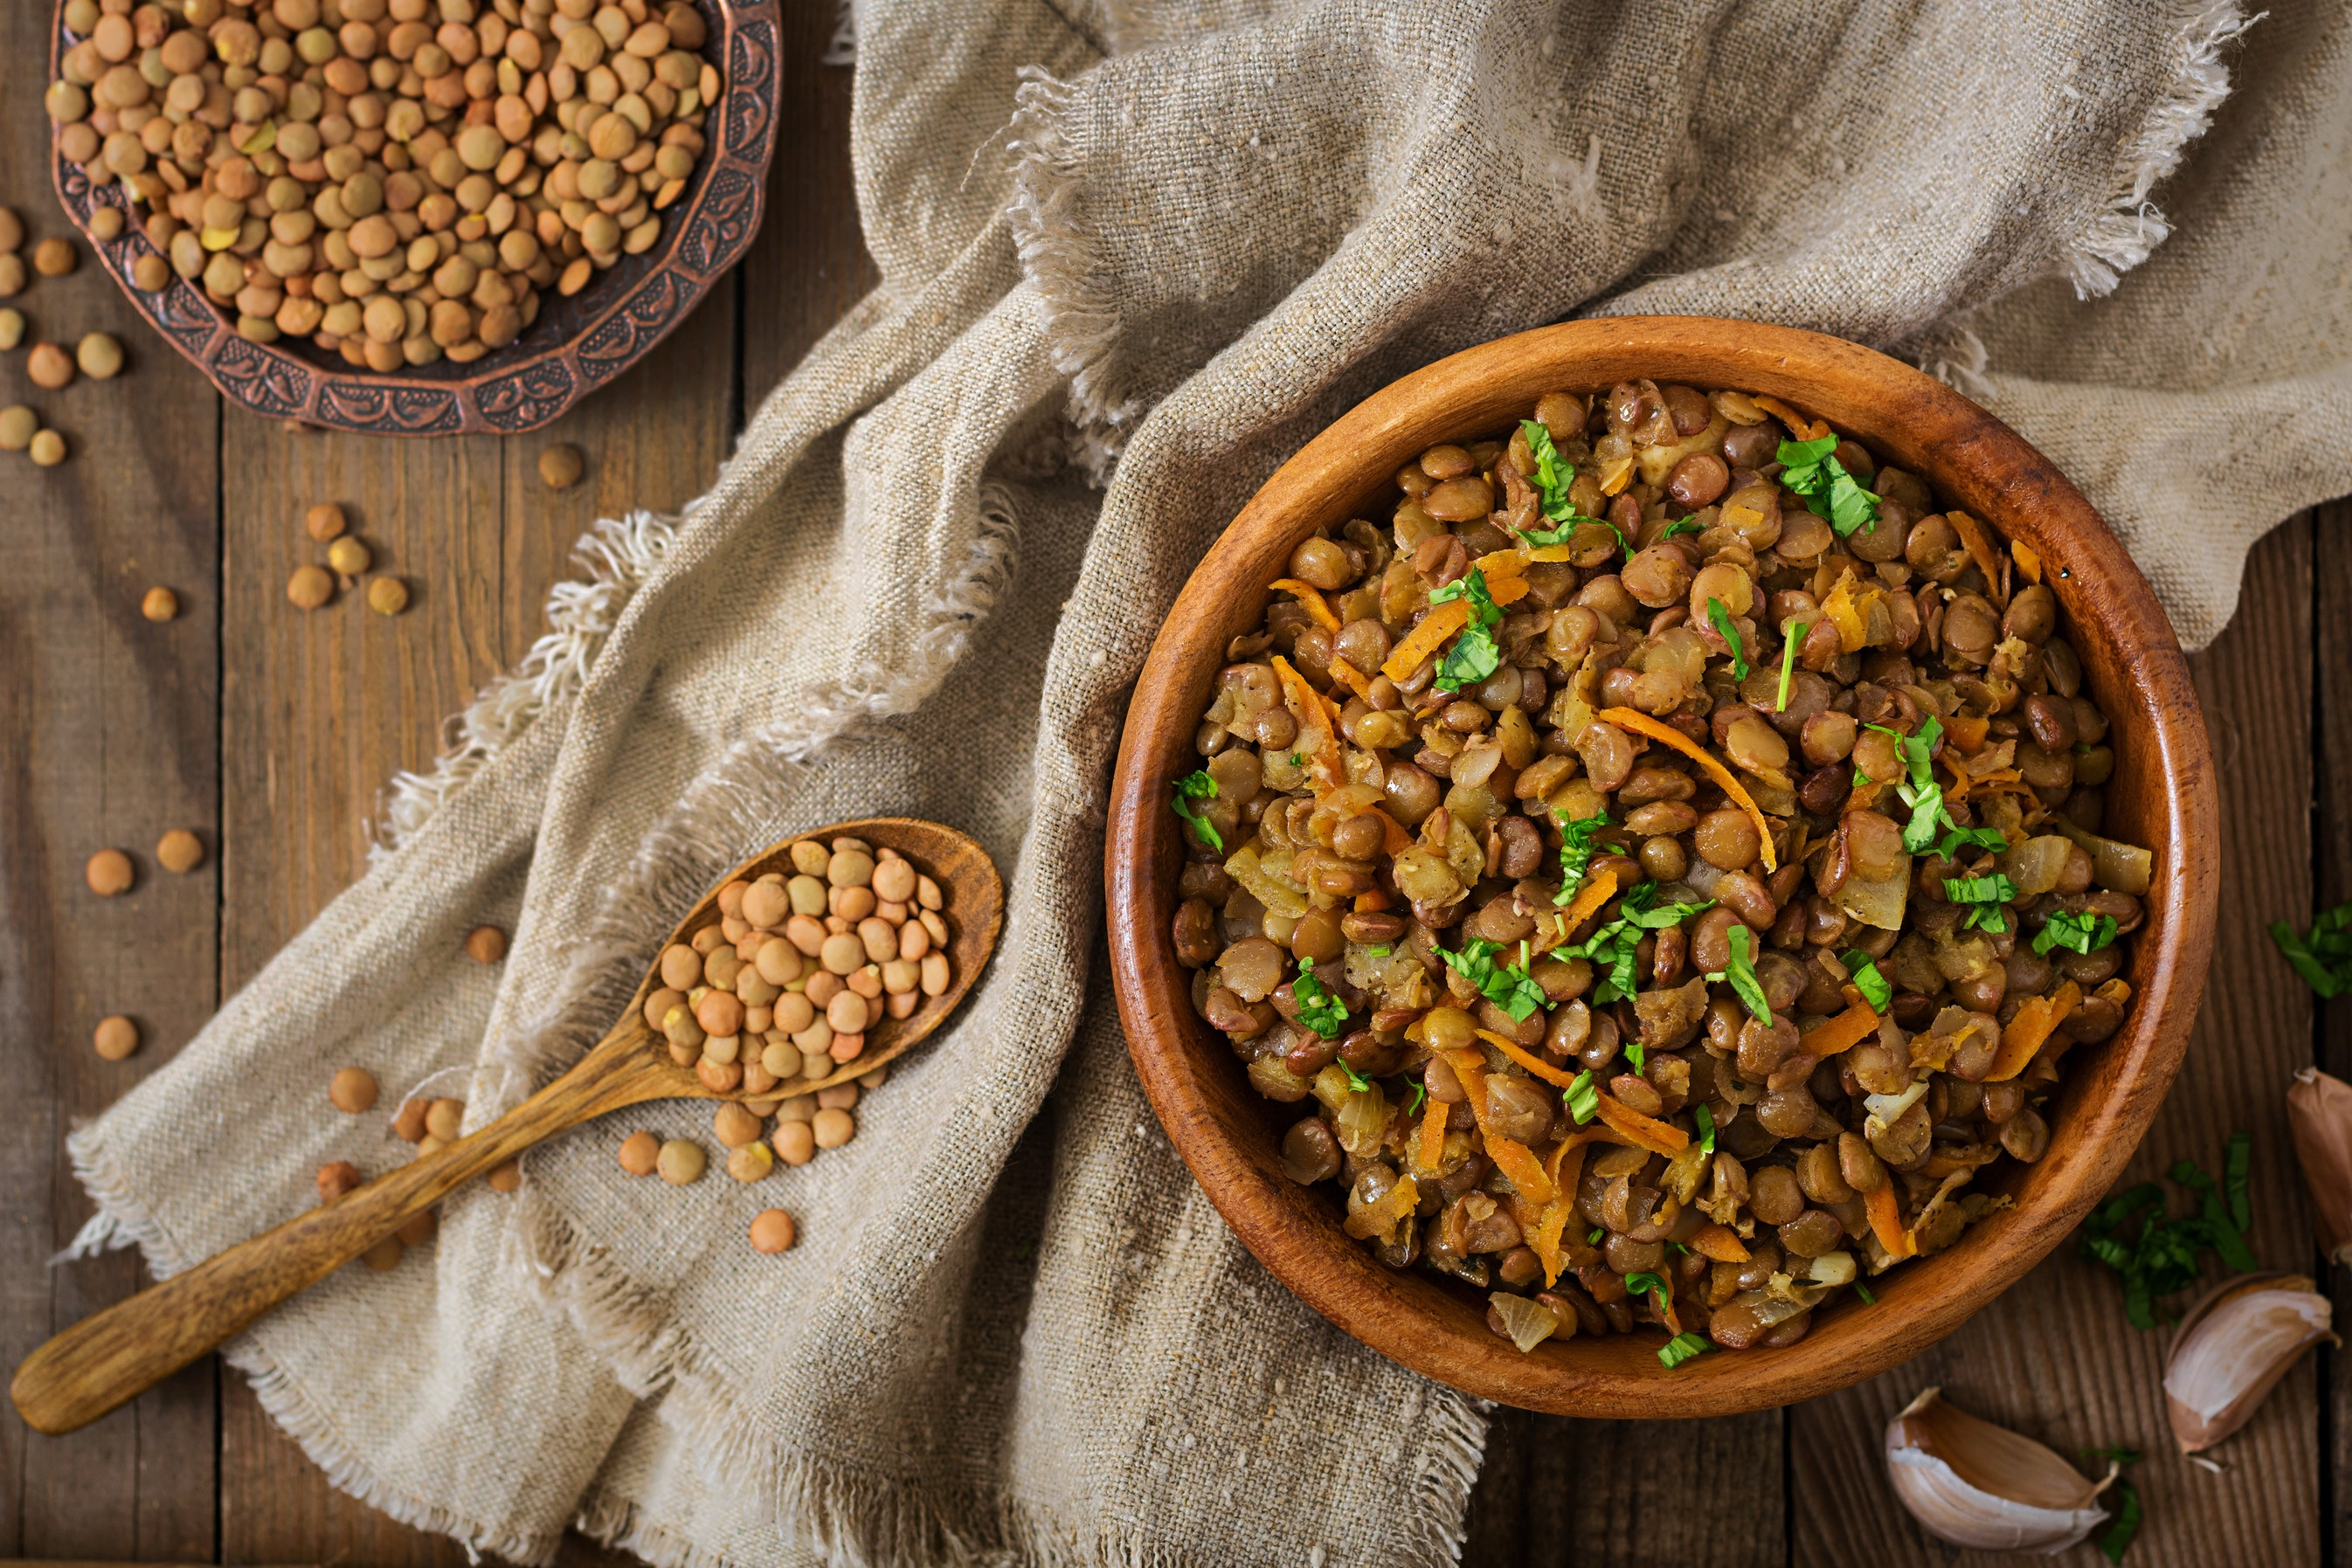 French Lentils with Garlic and Onion